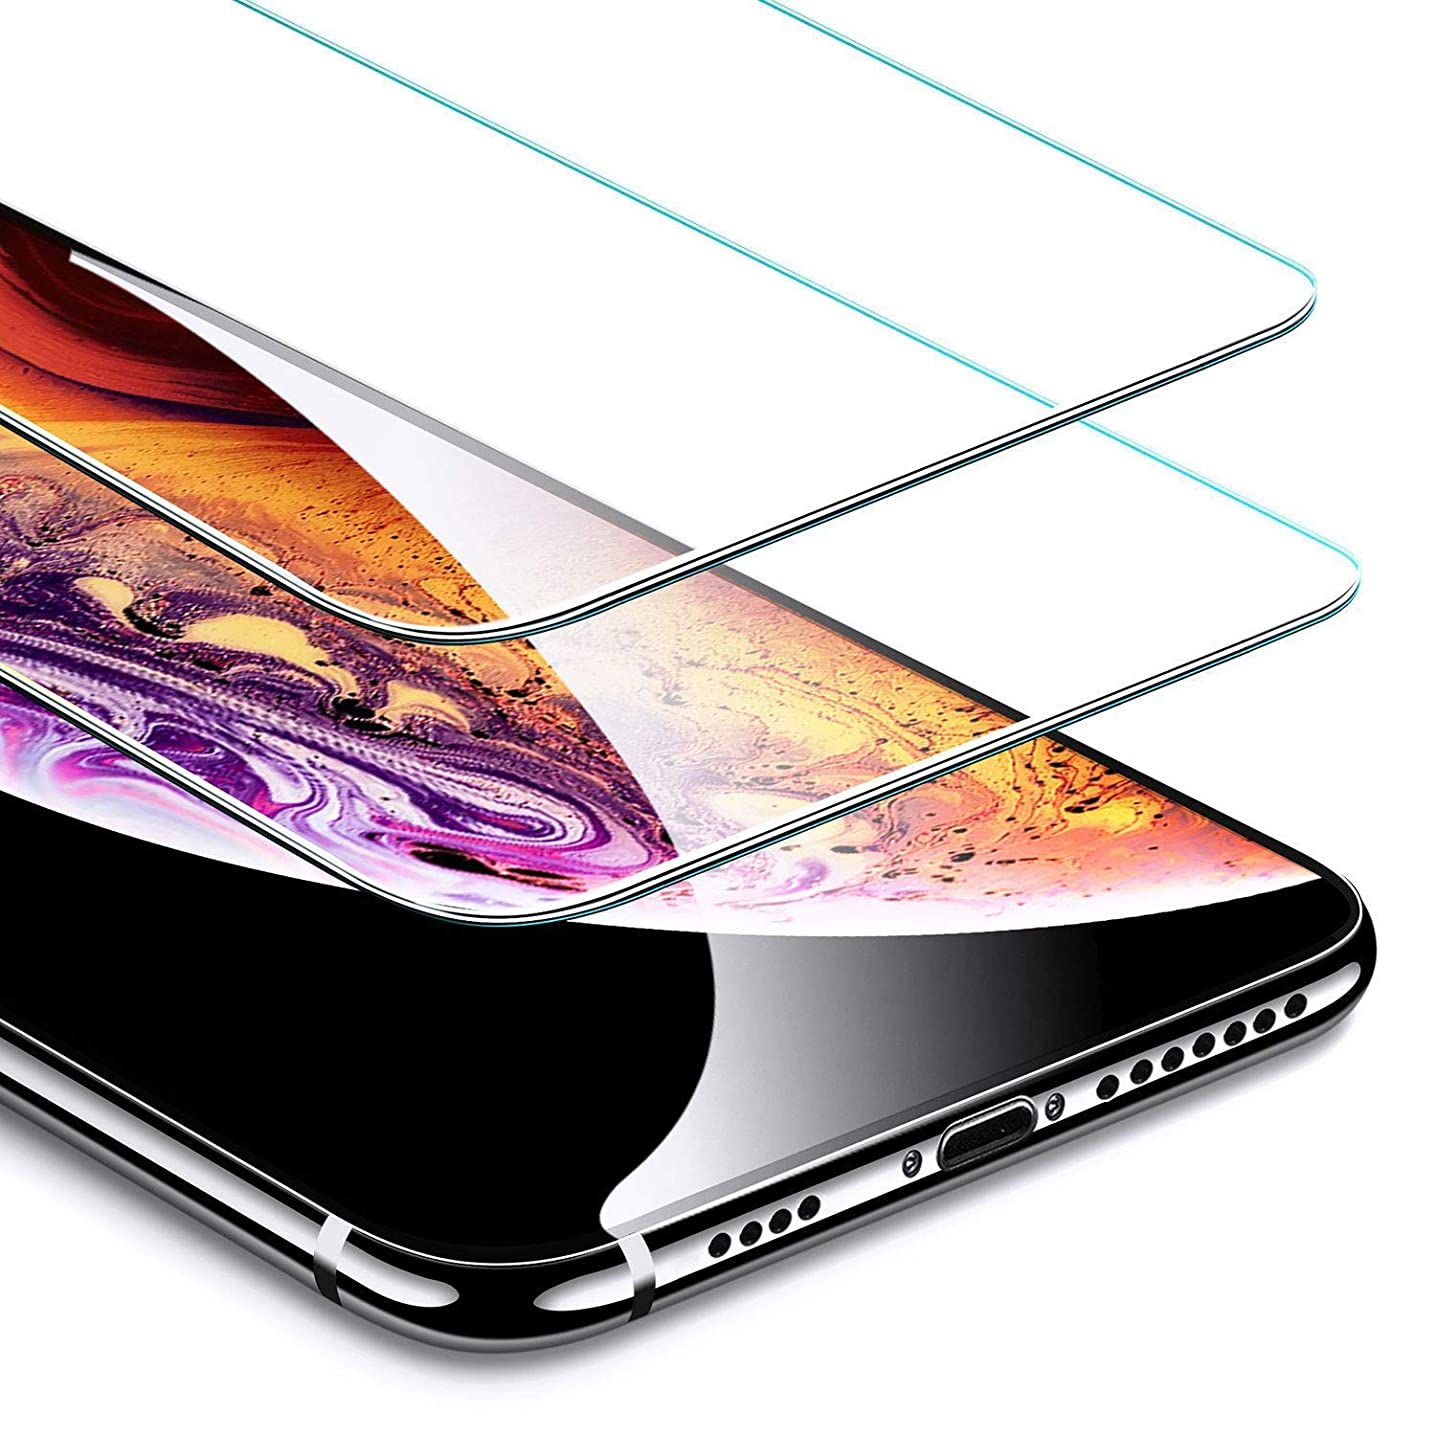 [2-Pack] Screen Protector for iPhone XS Max, iPhone XS Max Tempered Glass Screen Protector 6D Cold Curved Edge to Edge Full Cover Friendly for iPhone XS Max 6.5inch